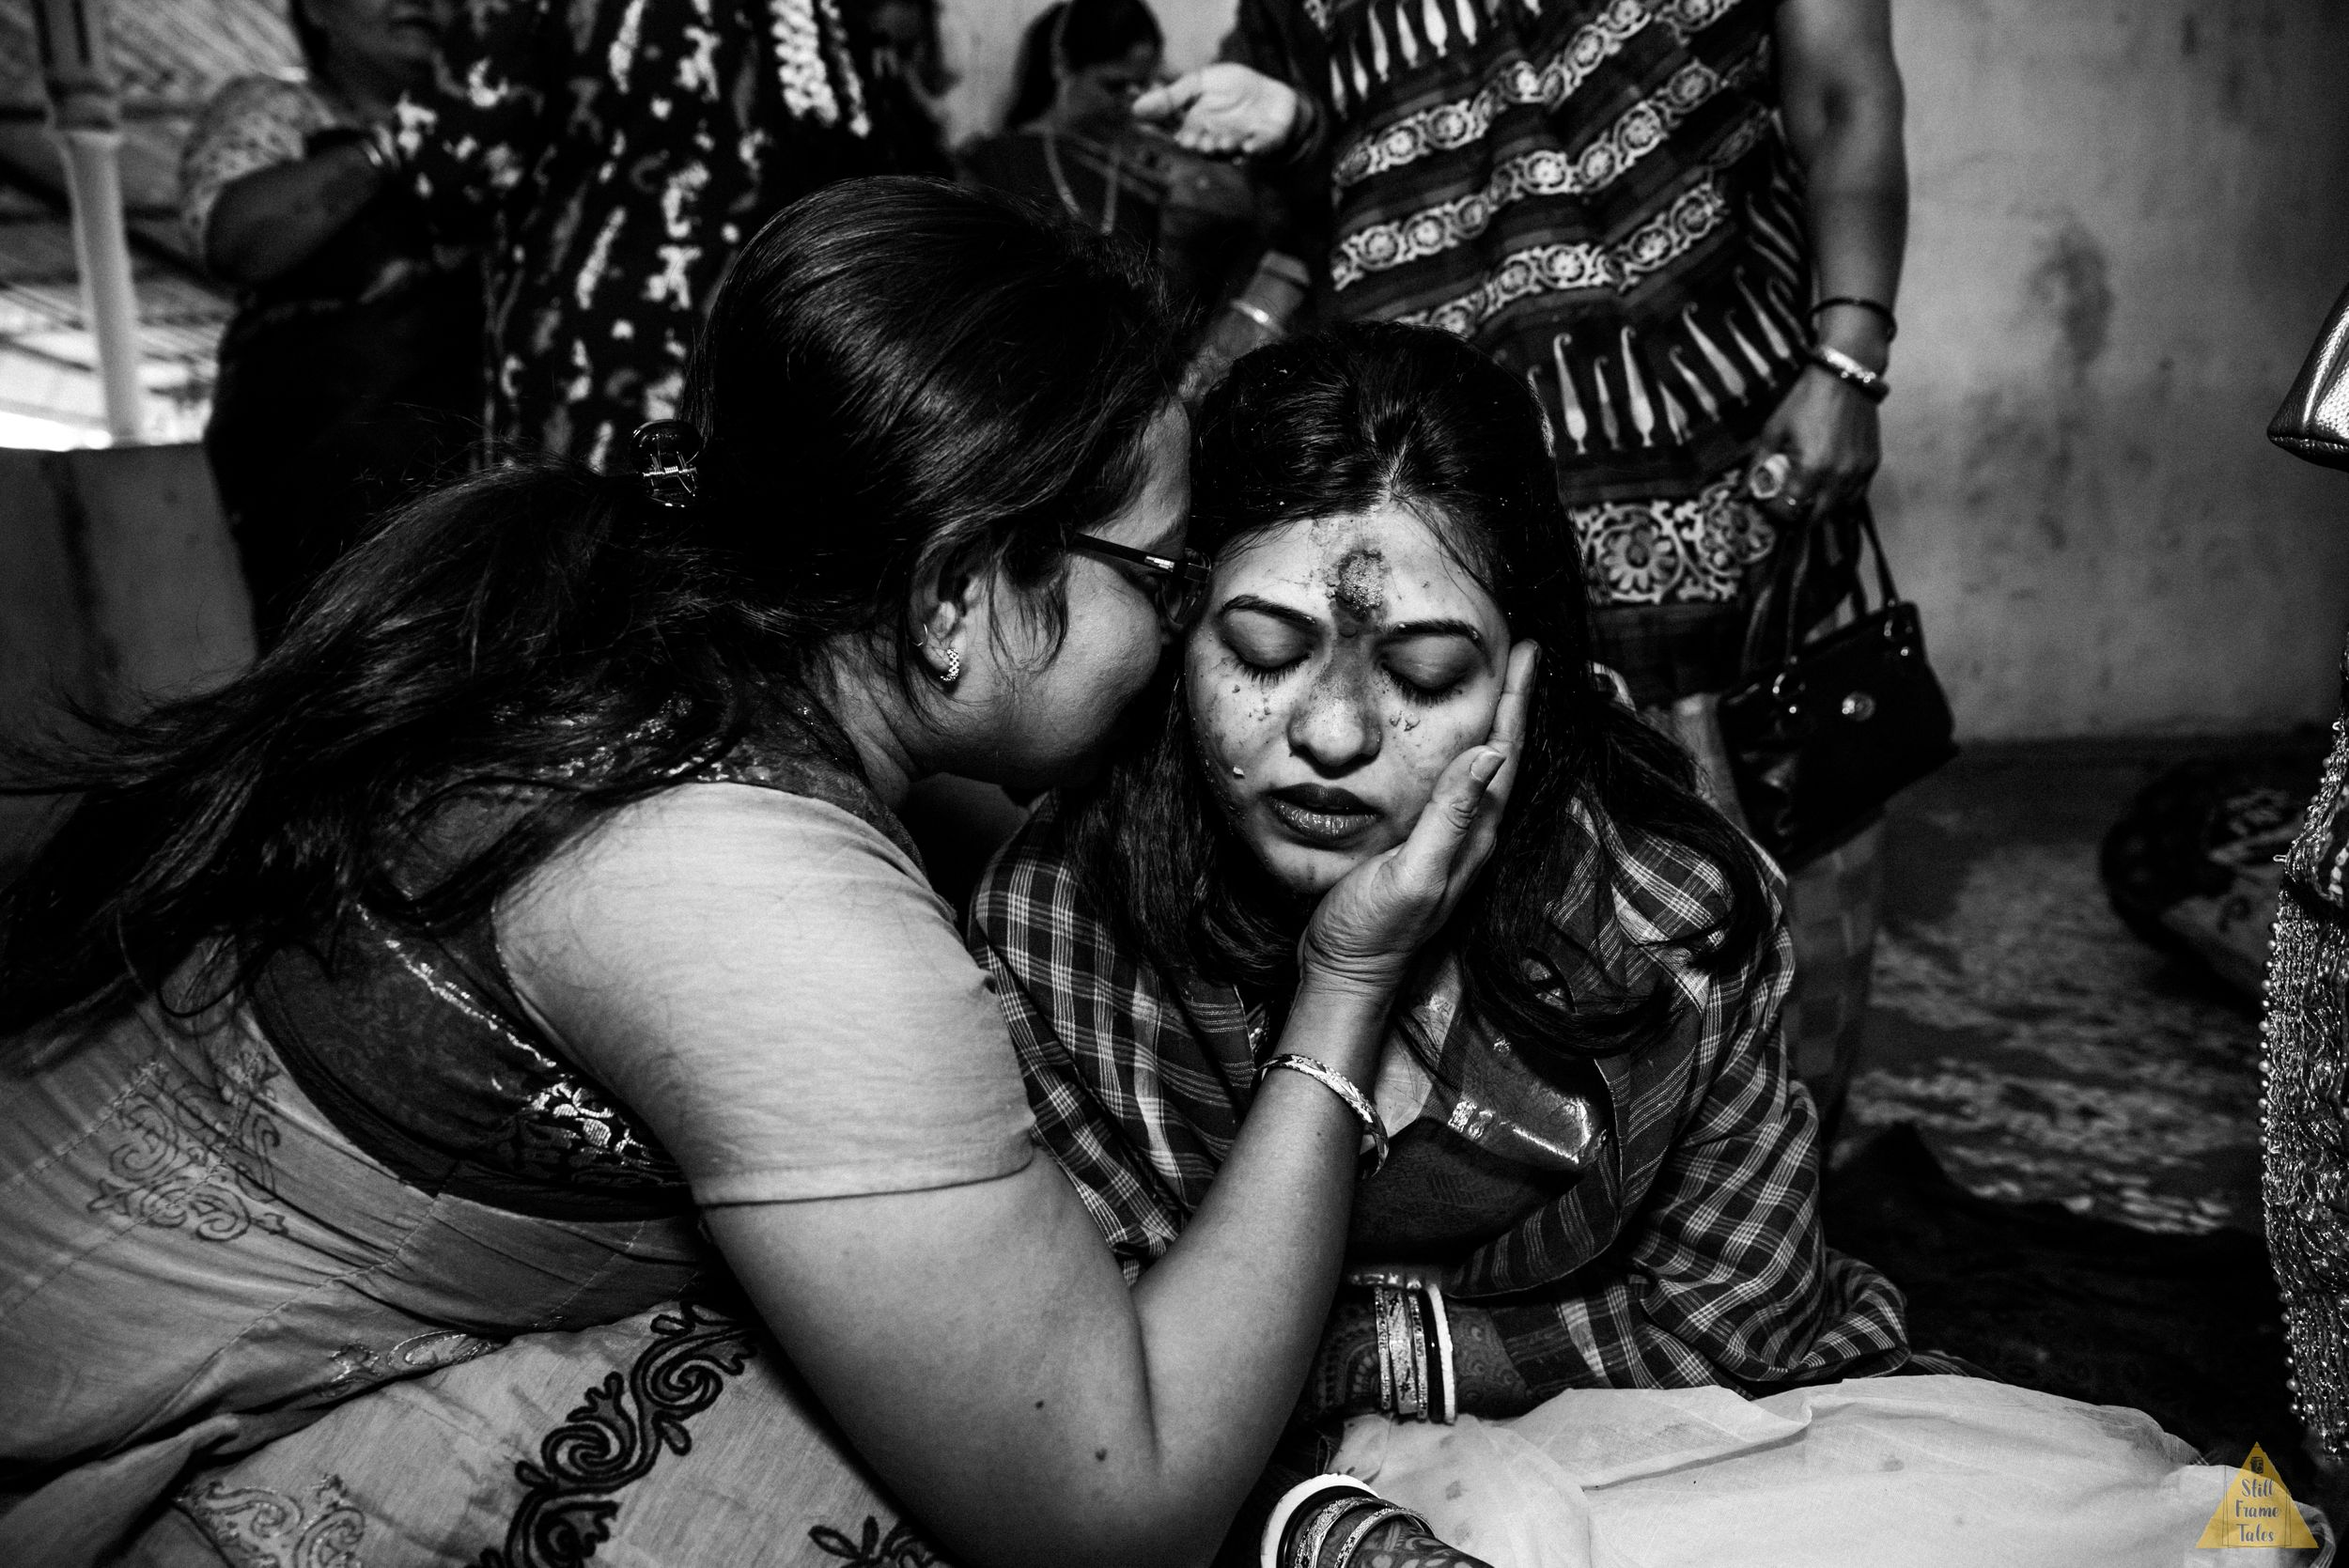 Auntie kissing emotional bride on her haldi ceremony in a black & white picture